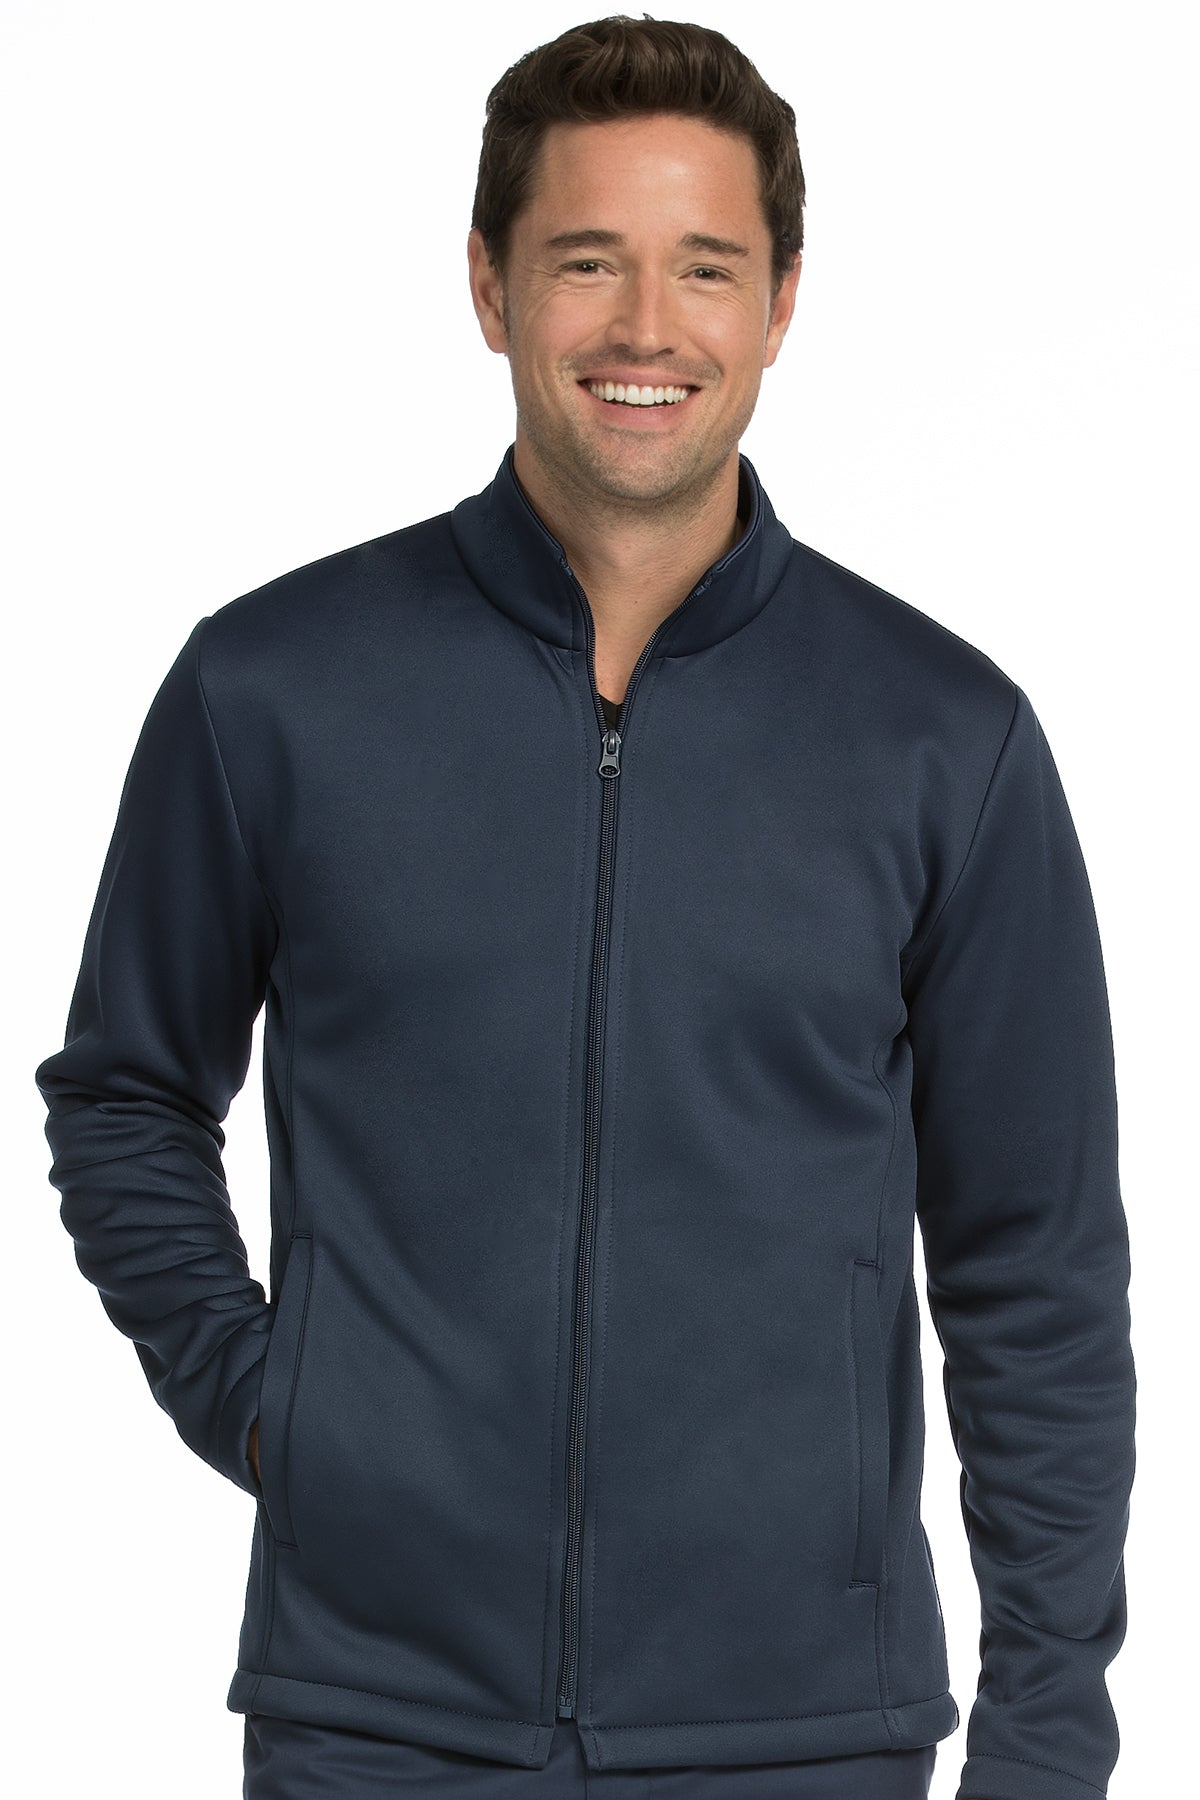 Med Couture Activate 8688 Men's Performance Fleece Jacket